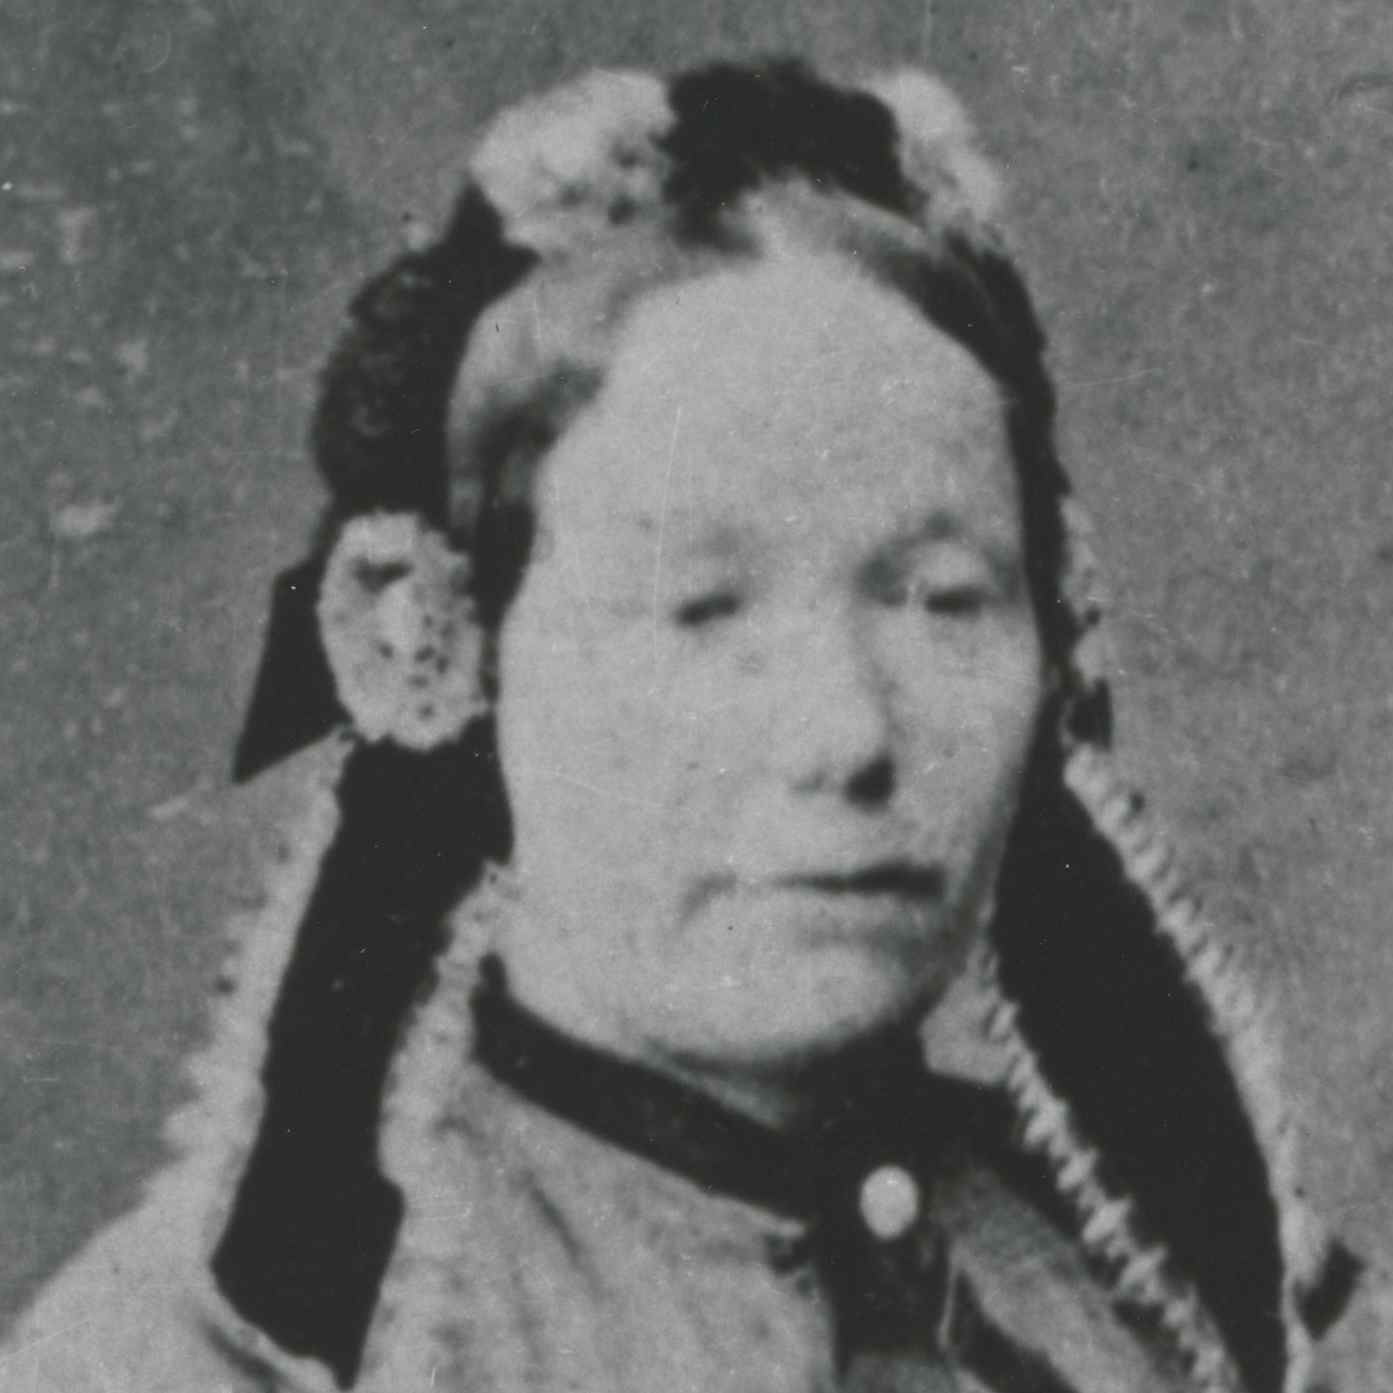 Image taken in the 1850s